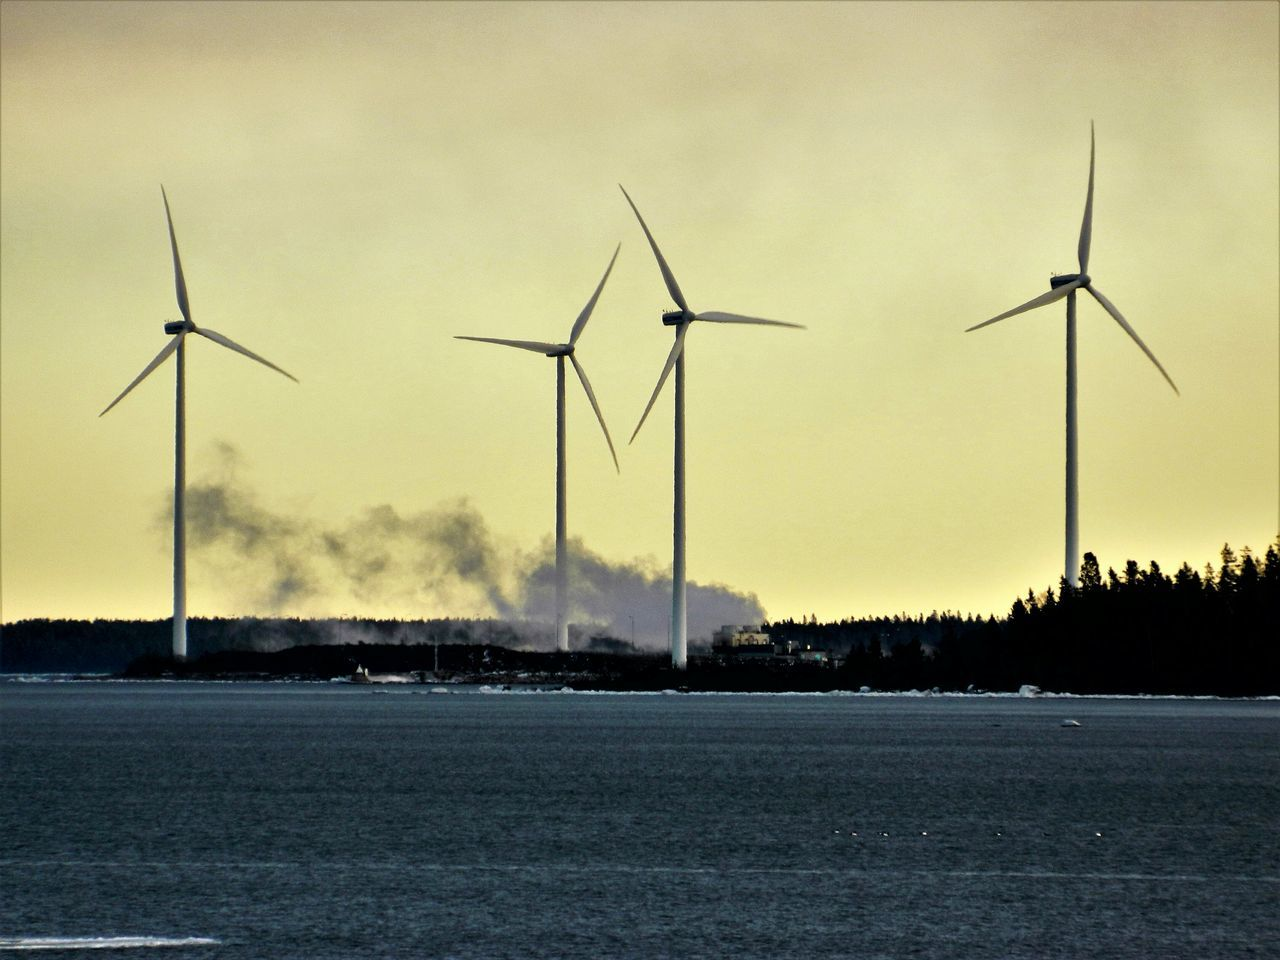 Wind Turbine Alternative Energy Wind Power Environmental Conservation Fuel And Power Generation Windmill Renewable Energy No People Electricity  Technology Outdoors Sky Industrial Windmill Nature Day Seascape Photography Seashore Seaside Seascape Landscape_Collection Cold Temperature Ice Landscape Sea Water